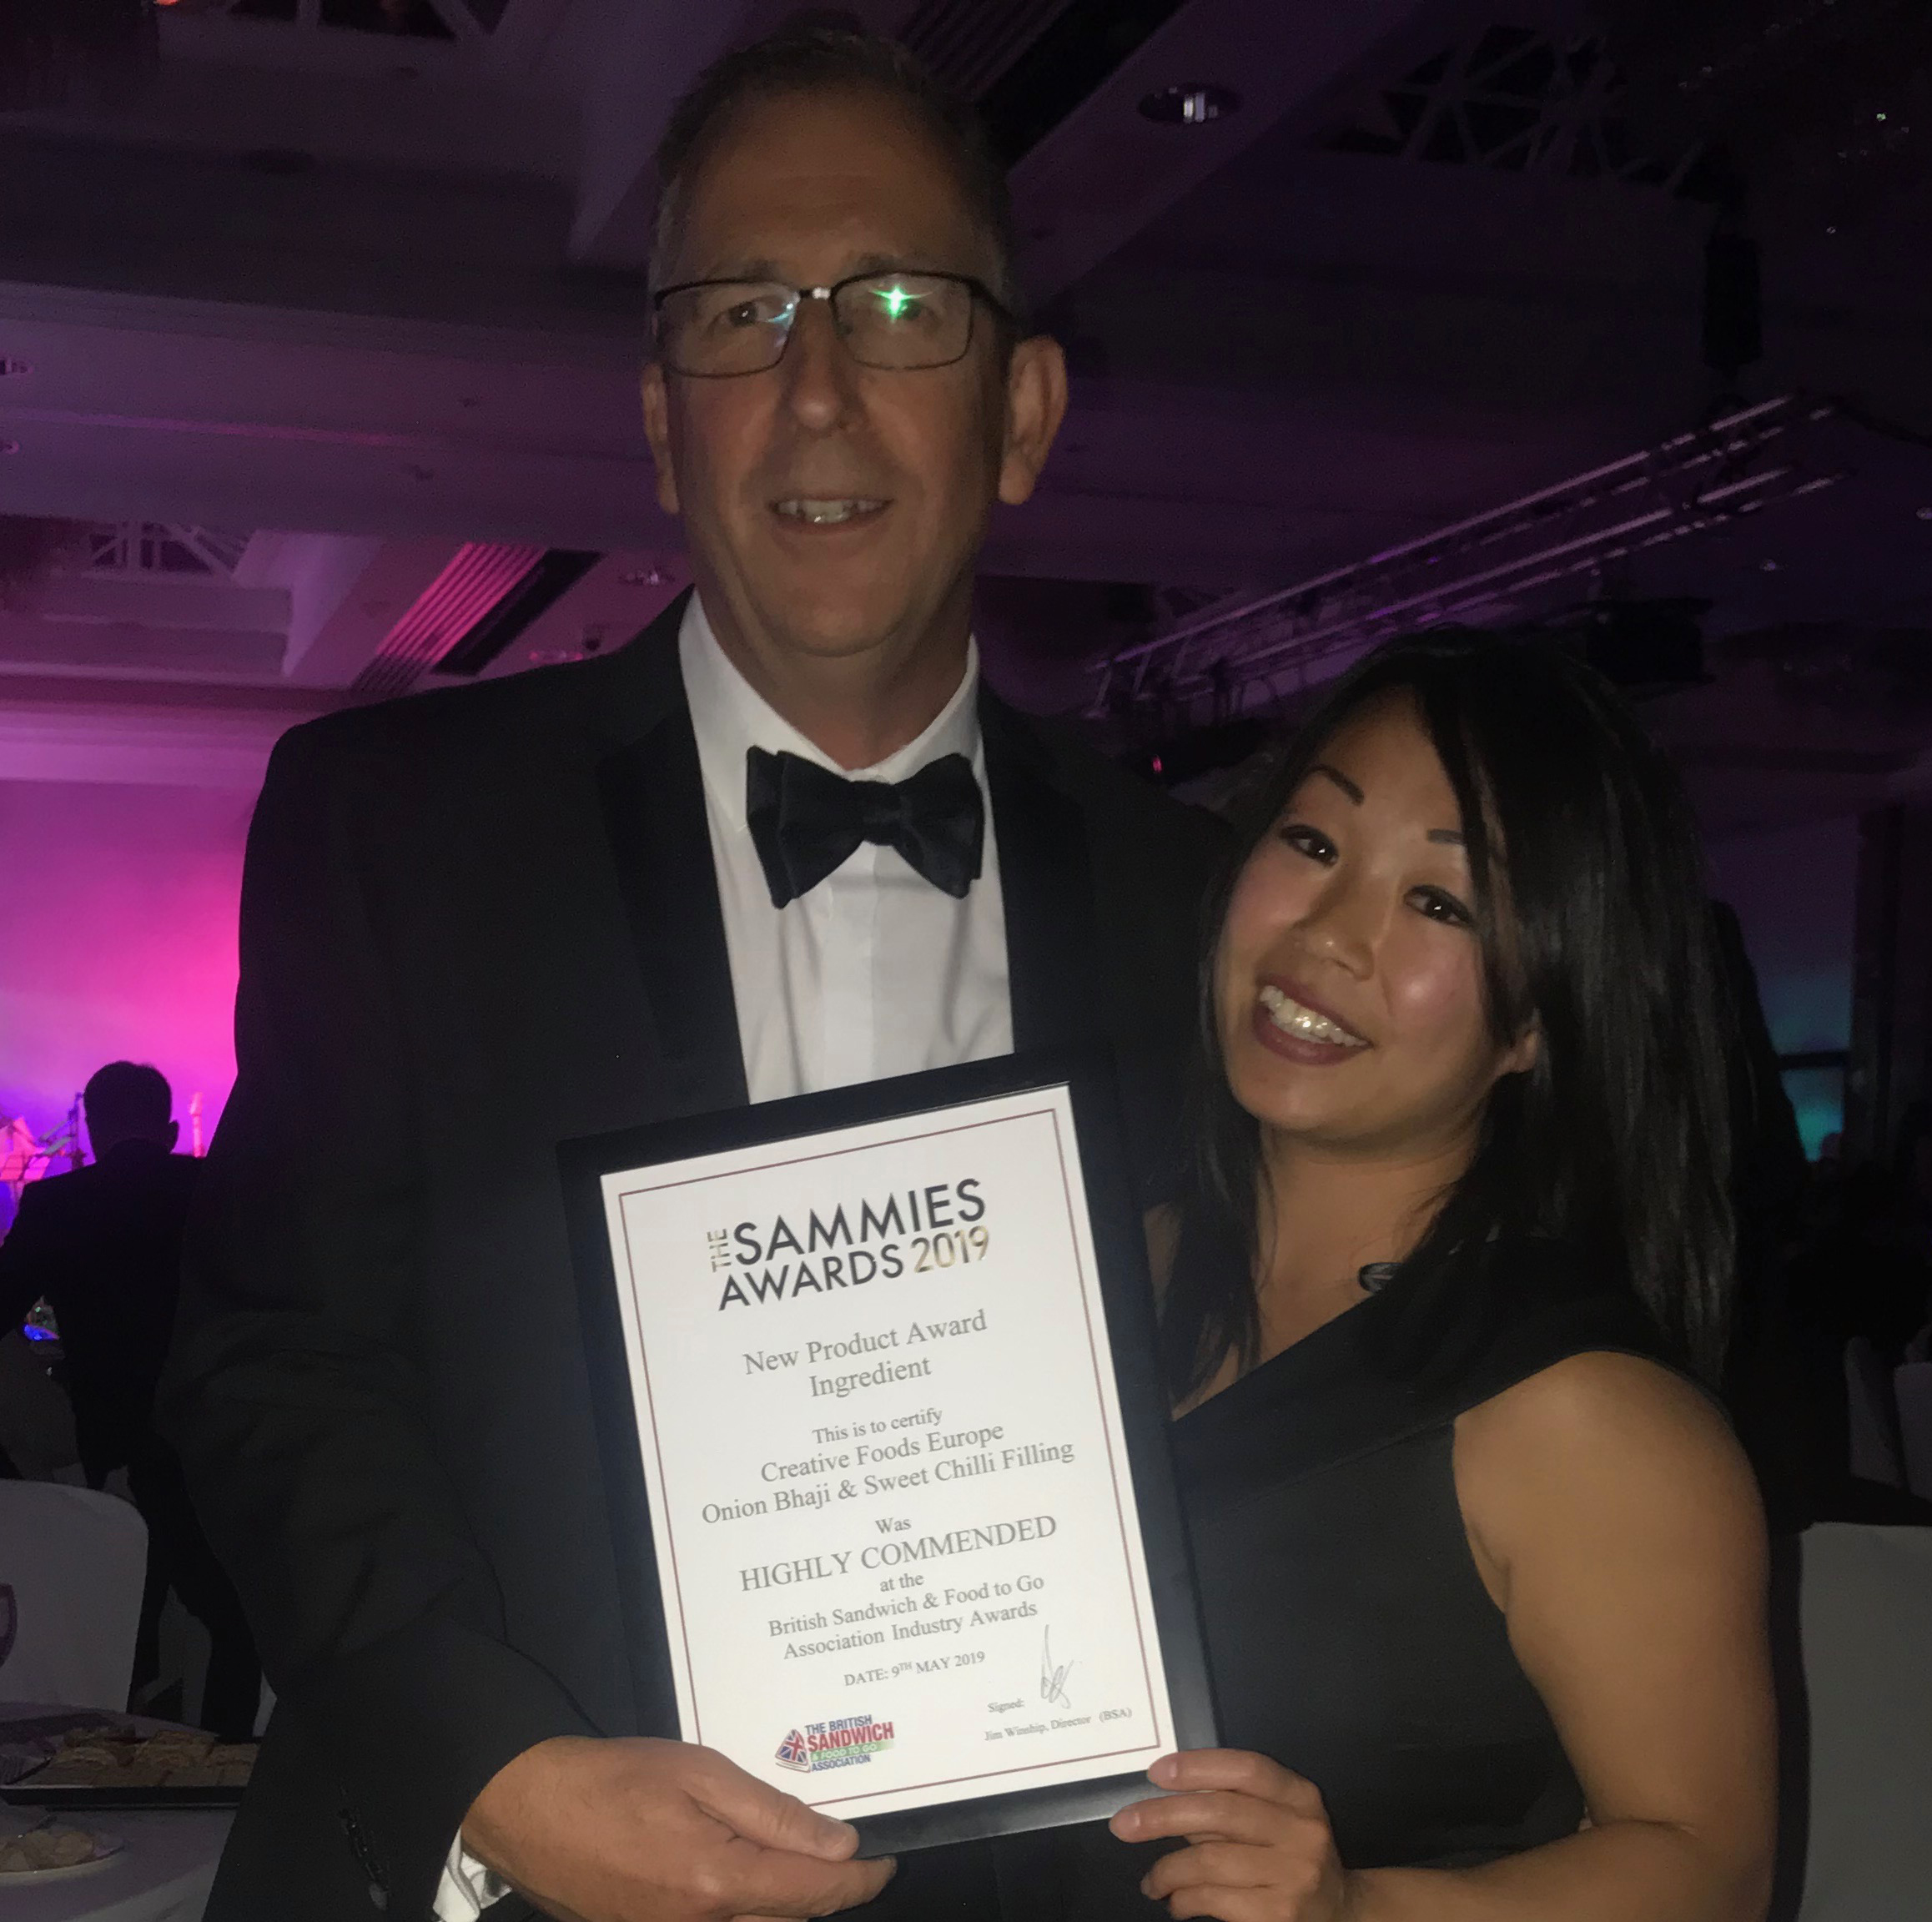 Highly Commended Sammies